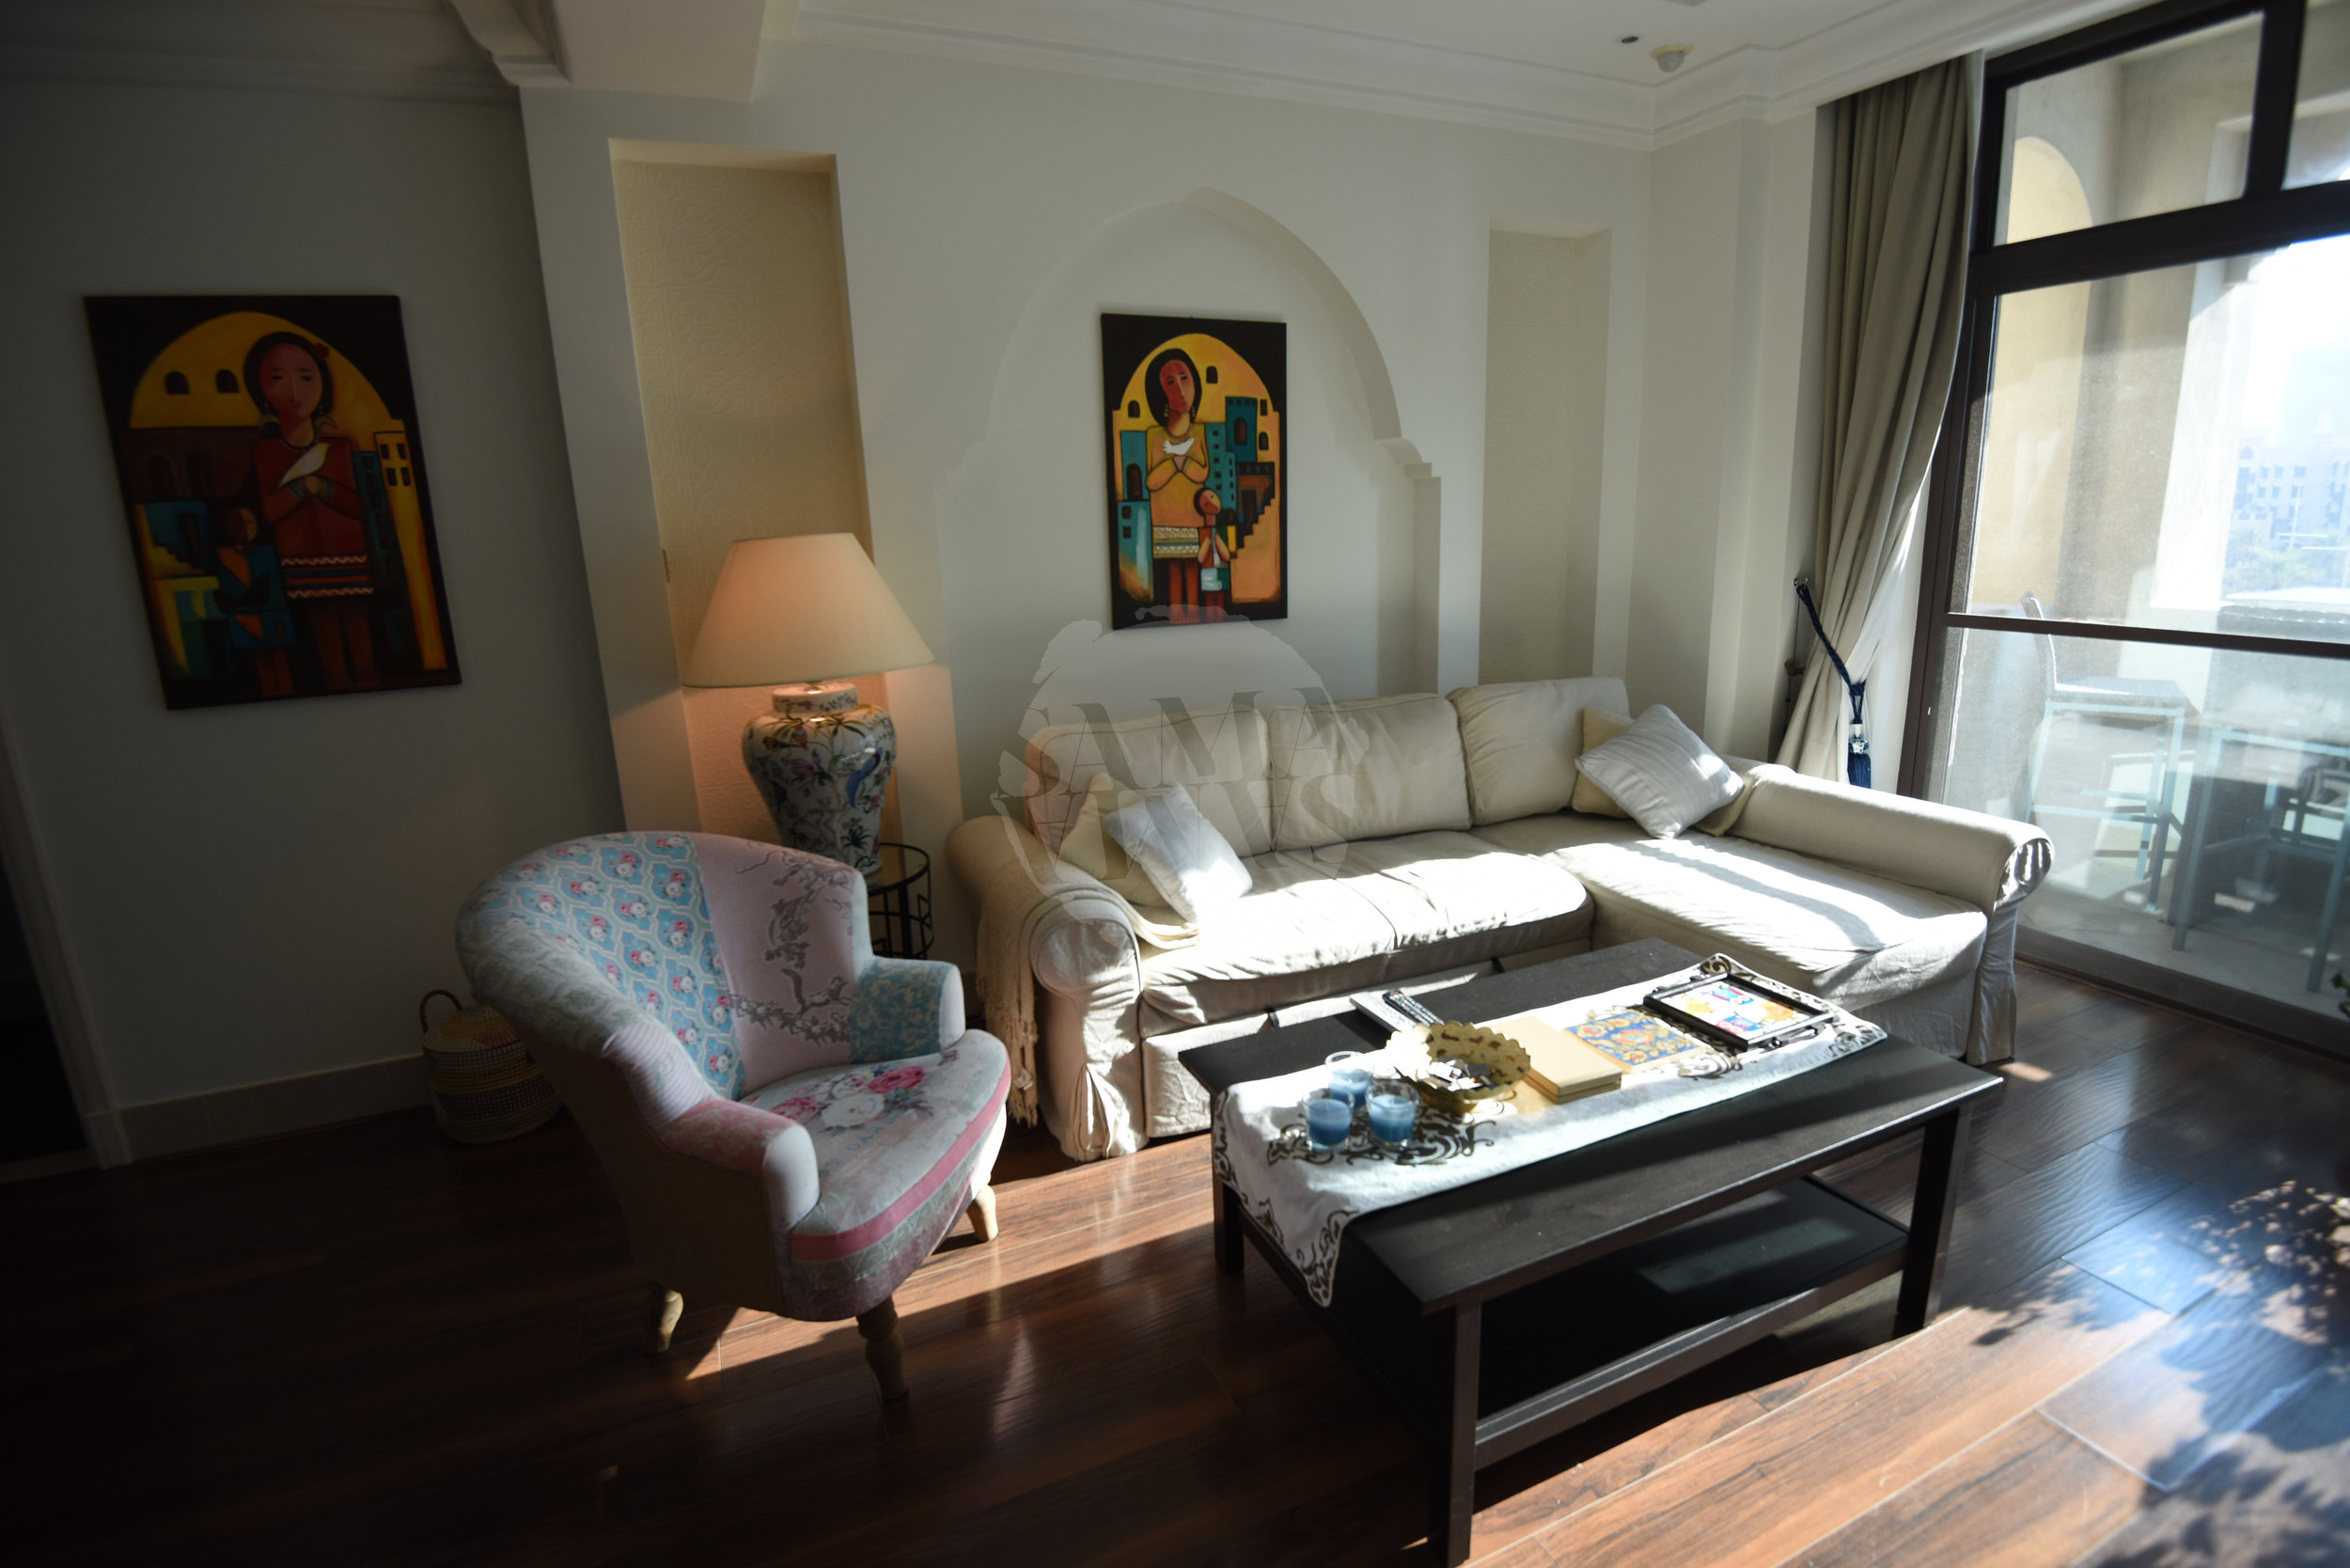 The living area is the perfect place to relax as it welcomes the sunset light through the balcony as the day winds down